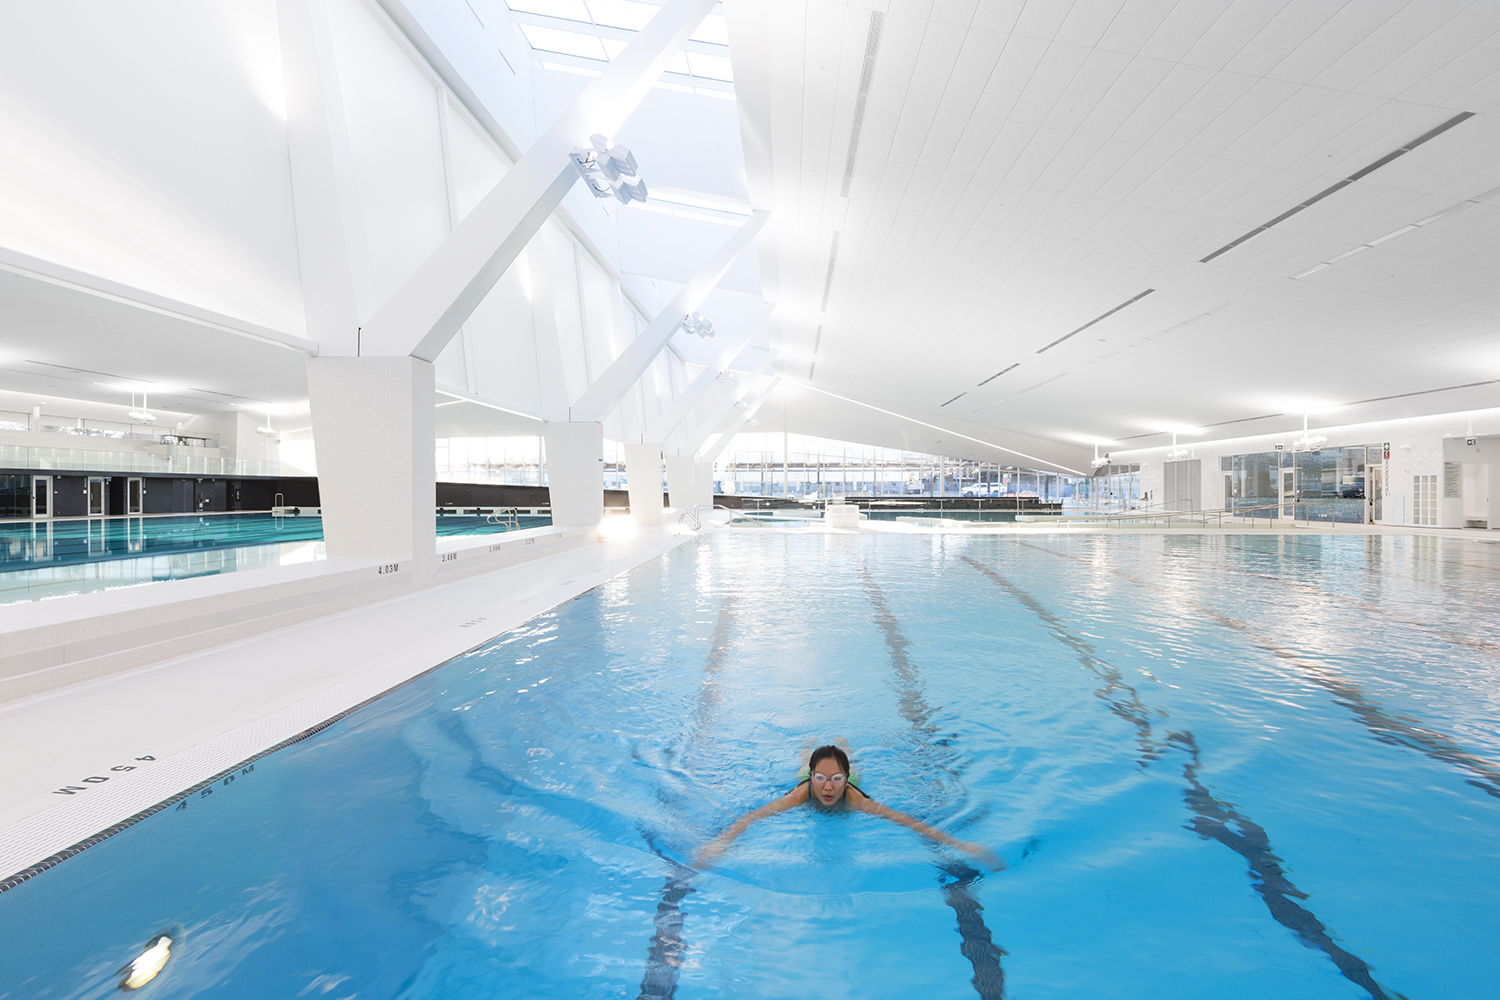 Ubc aquatic centre mjma archello for Columbia university swimming pool